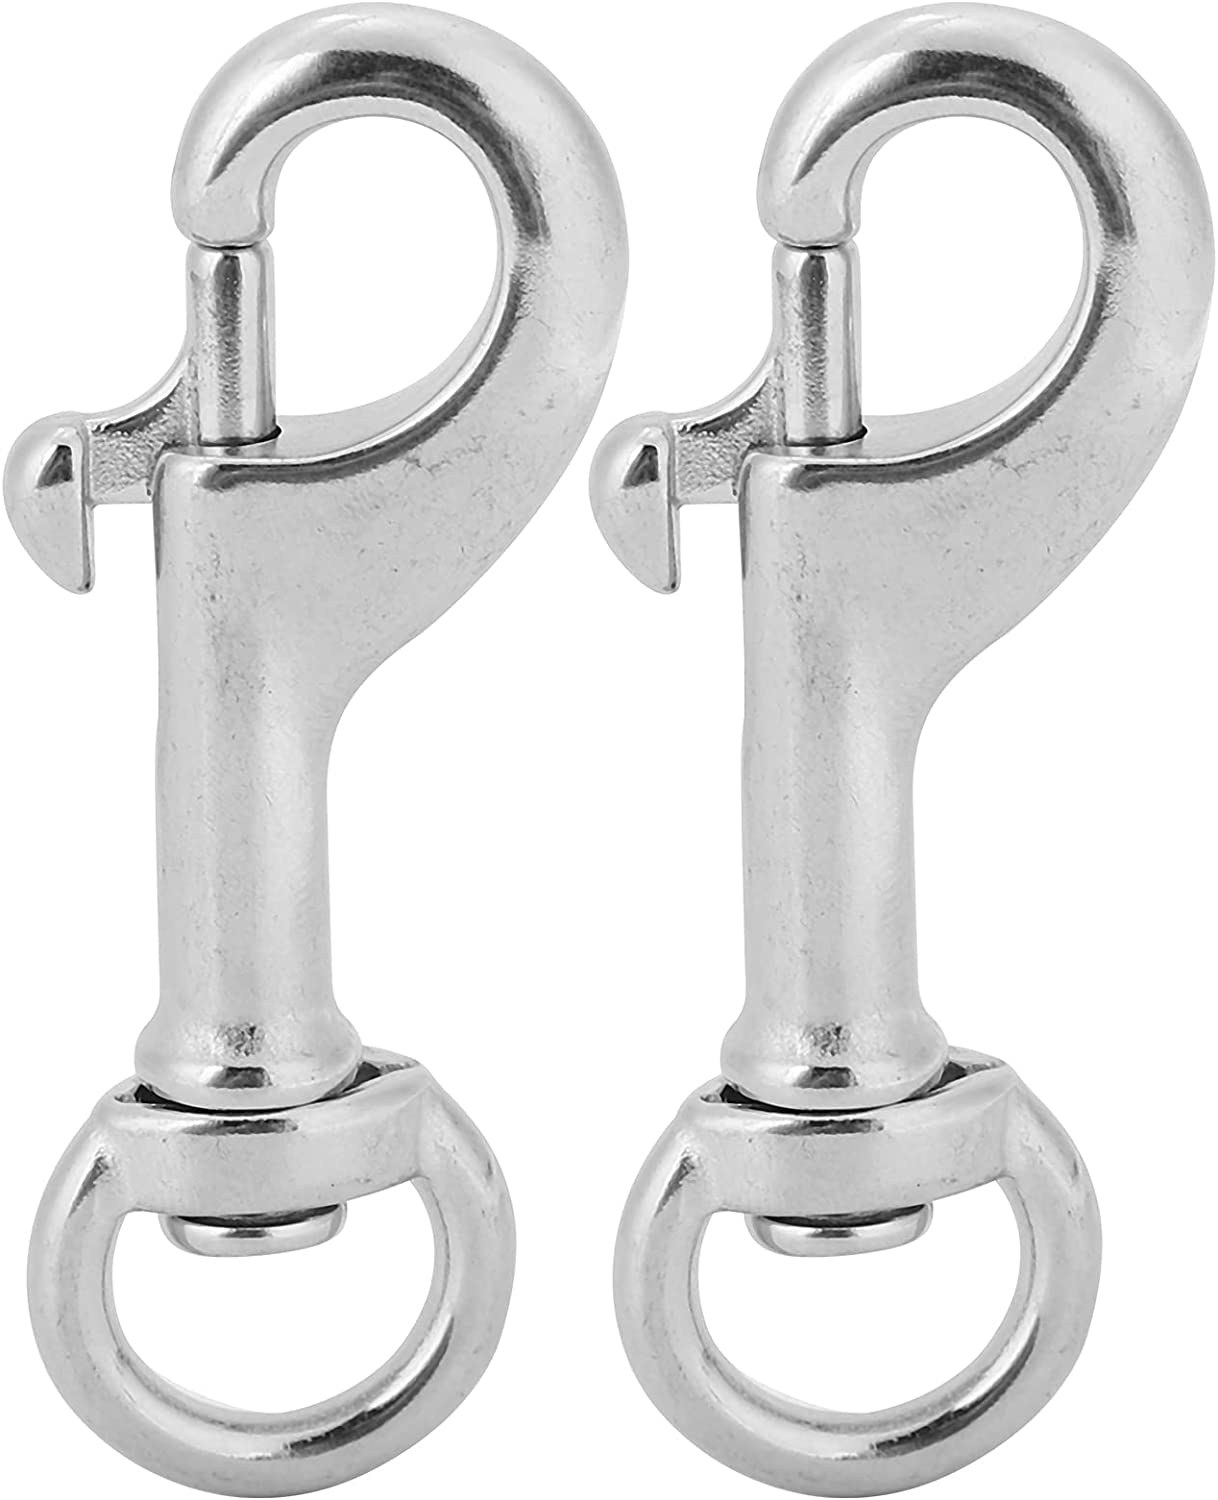 Ladieshow 2pcs 2021new shipping free 68MM Diving 316 Stainless Eye Cheap mail order shopping Steel Swivel H Snap